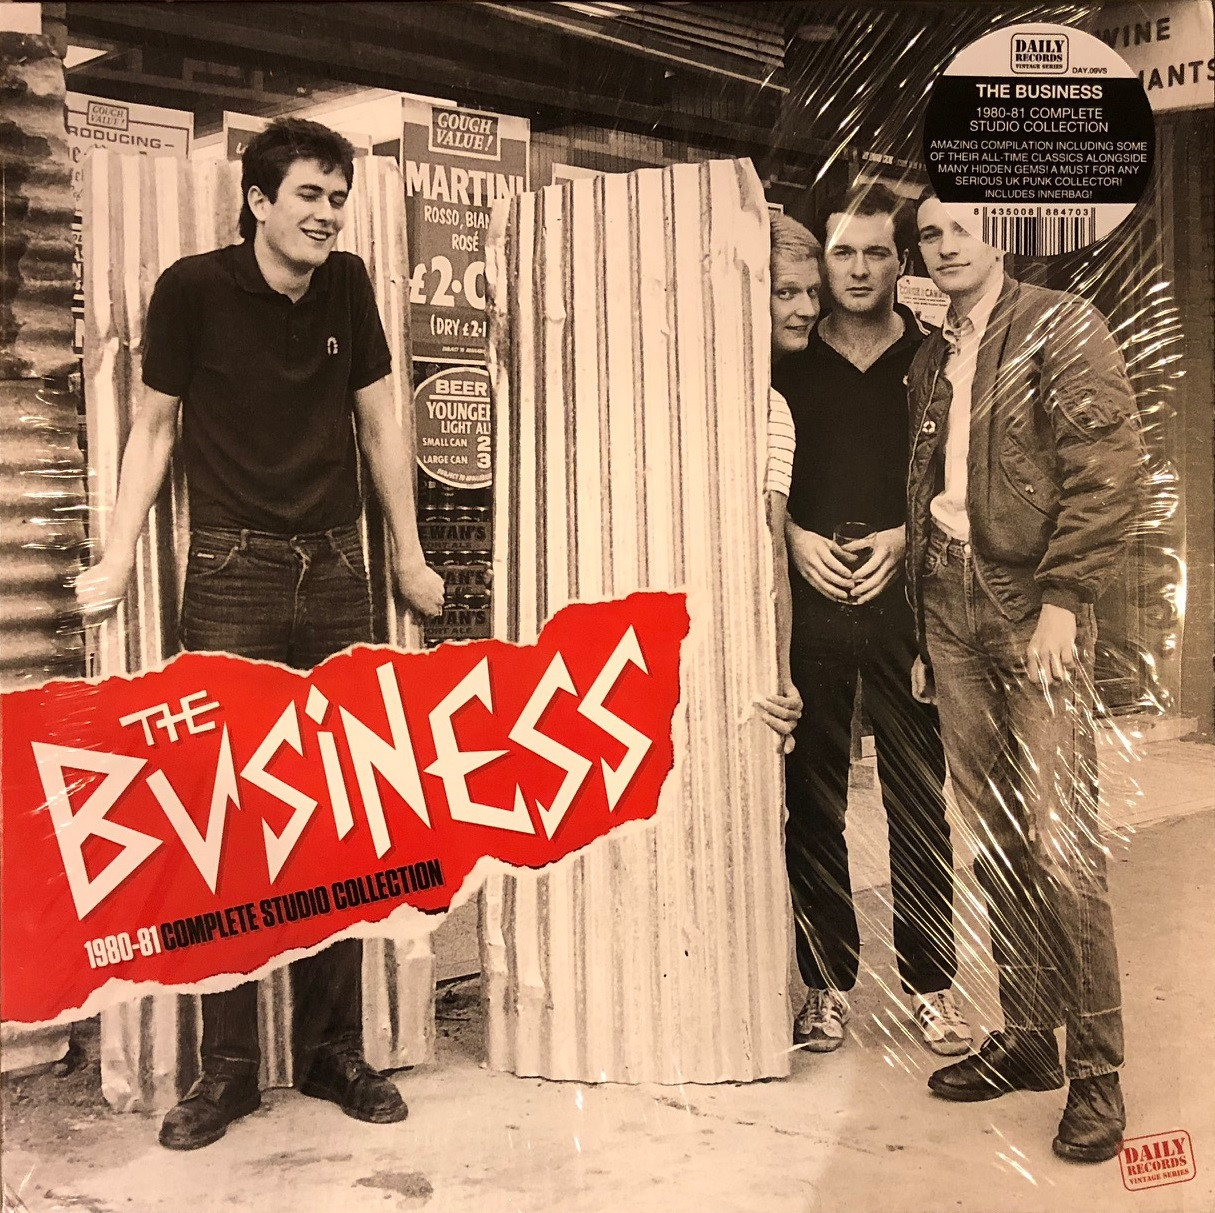 BUSINESS / 1980-81 COMPLETE STUDIO COLLECTION